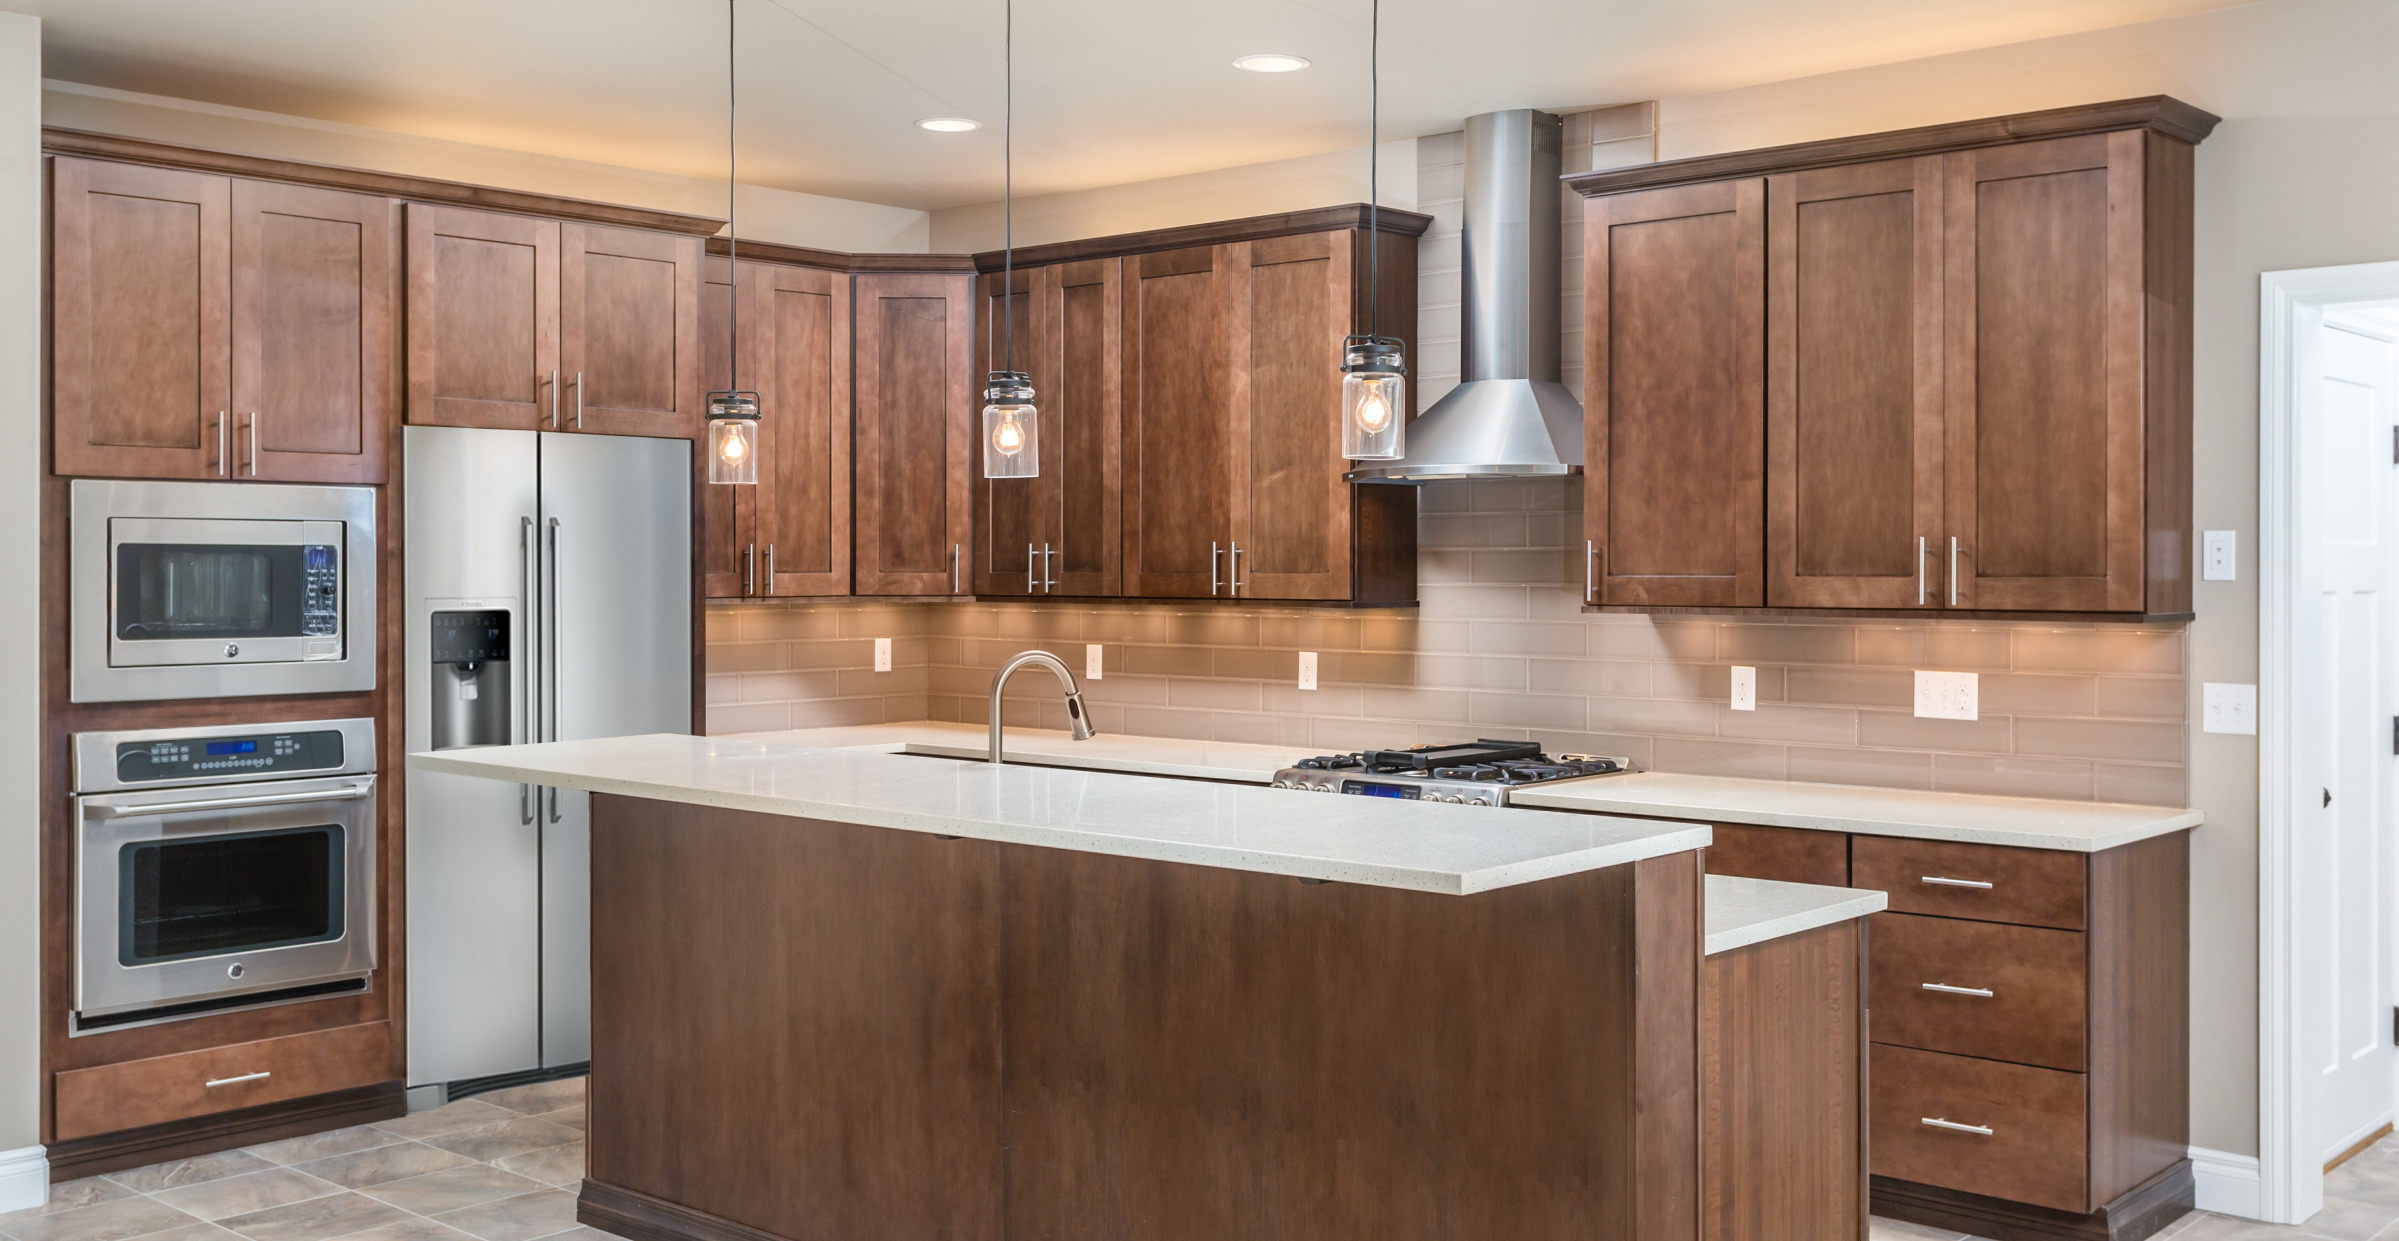 When picking out new cabinets for your kitchen remodel, remember, smooth, functional drawers and cabinets make working in the kitchen much more enjoyable.